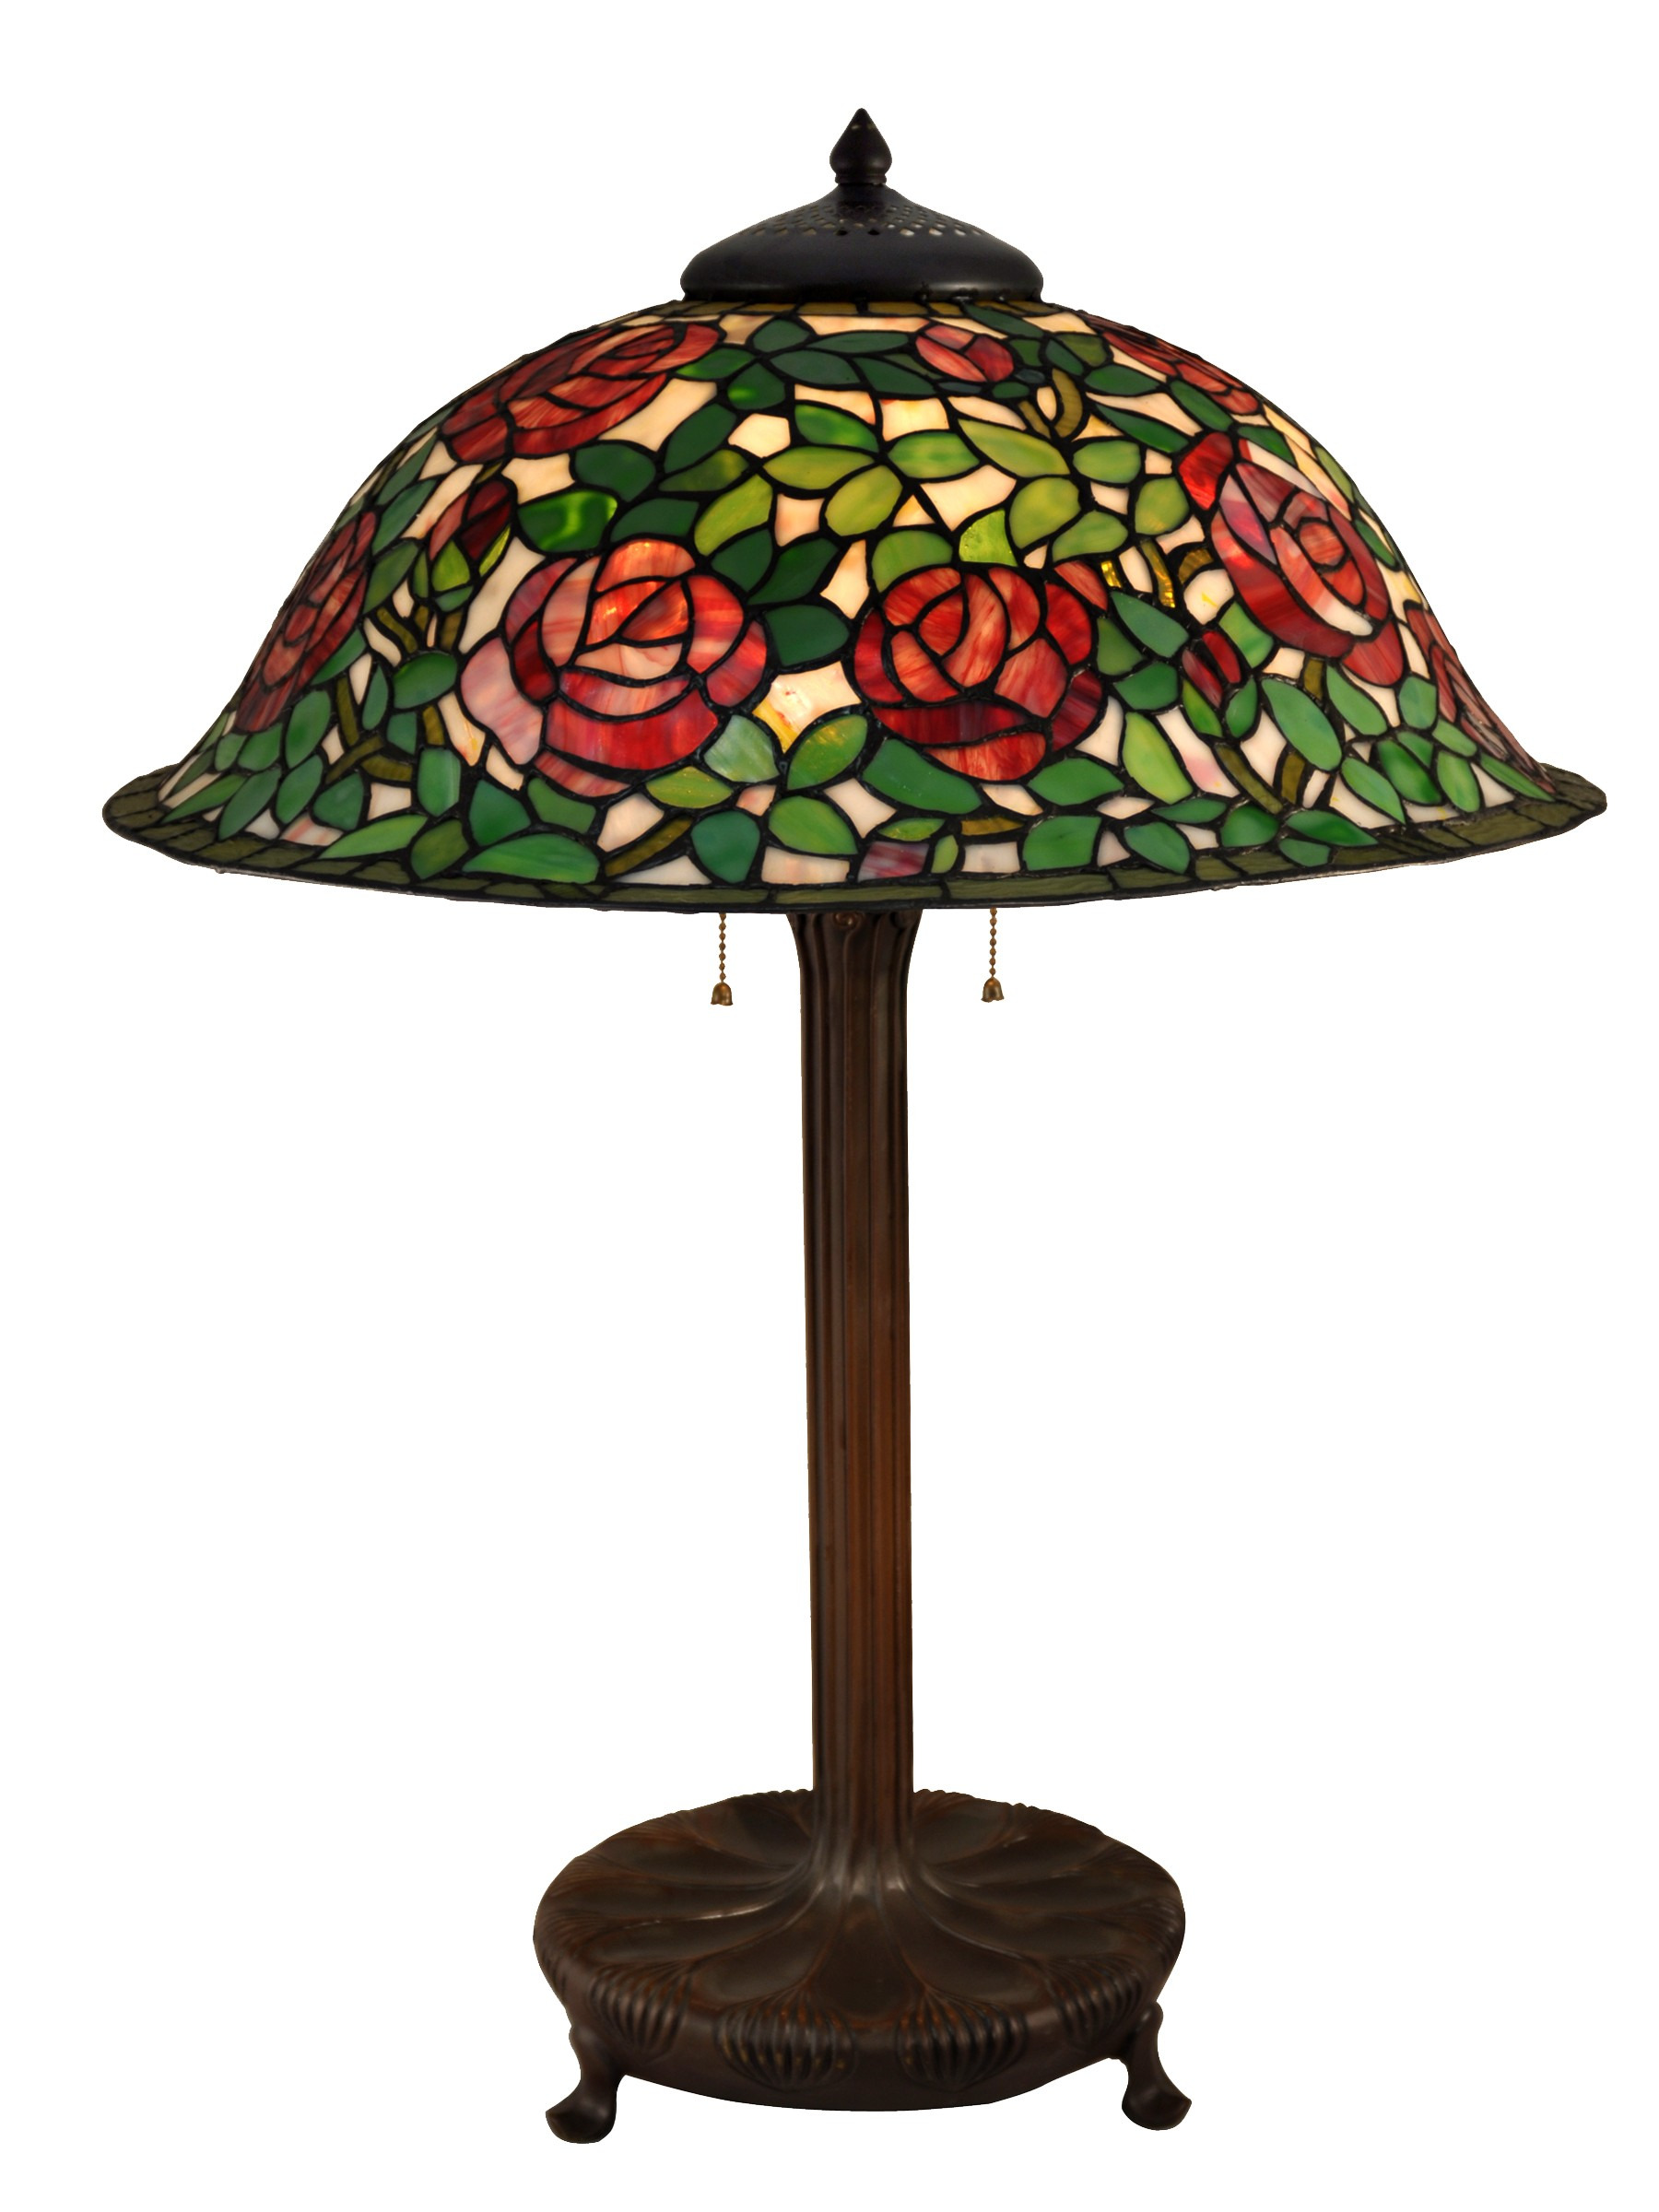 Dale Tiffany Lamp Replacement Parts Inspirational Dale Tiffany Tt Rose 32 Inch 60 Watt Antique Bronze Table Lamp Portable Light